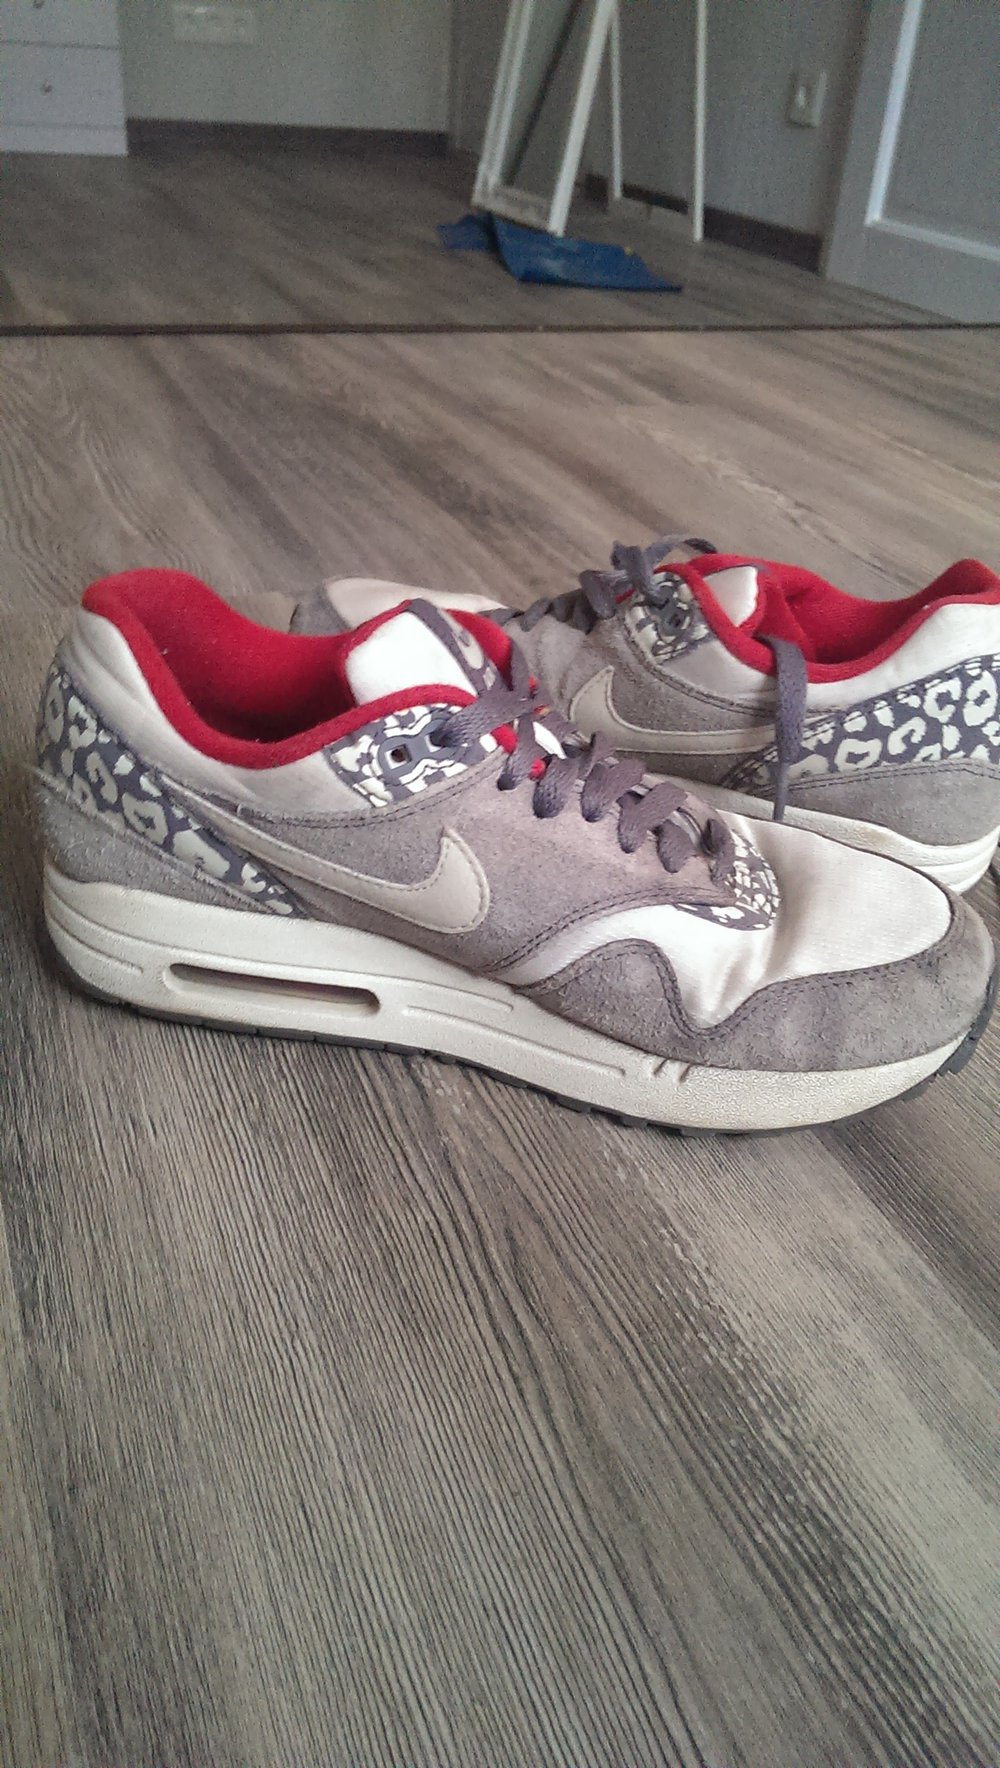 nike air max leo limited edition. Black Bedroom Furniture Sets. Home Design Ideas